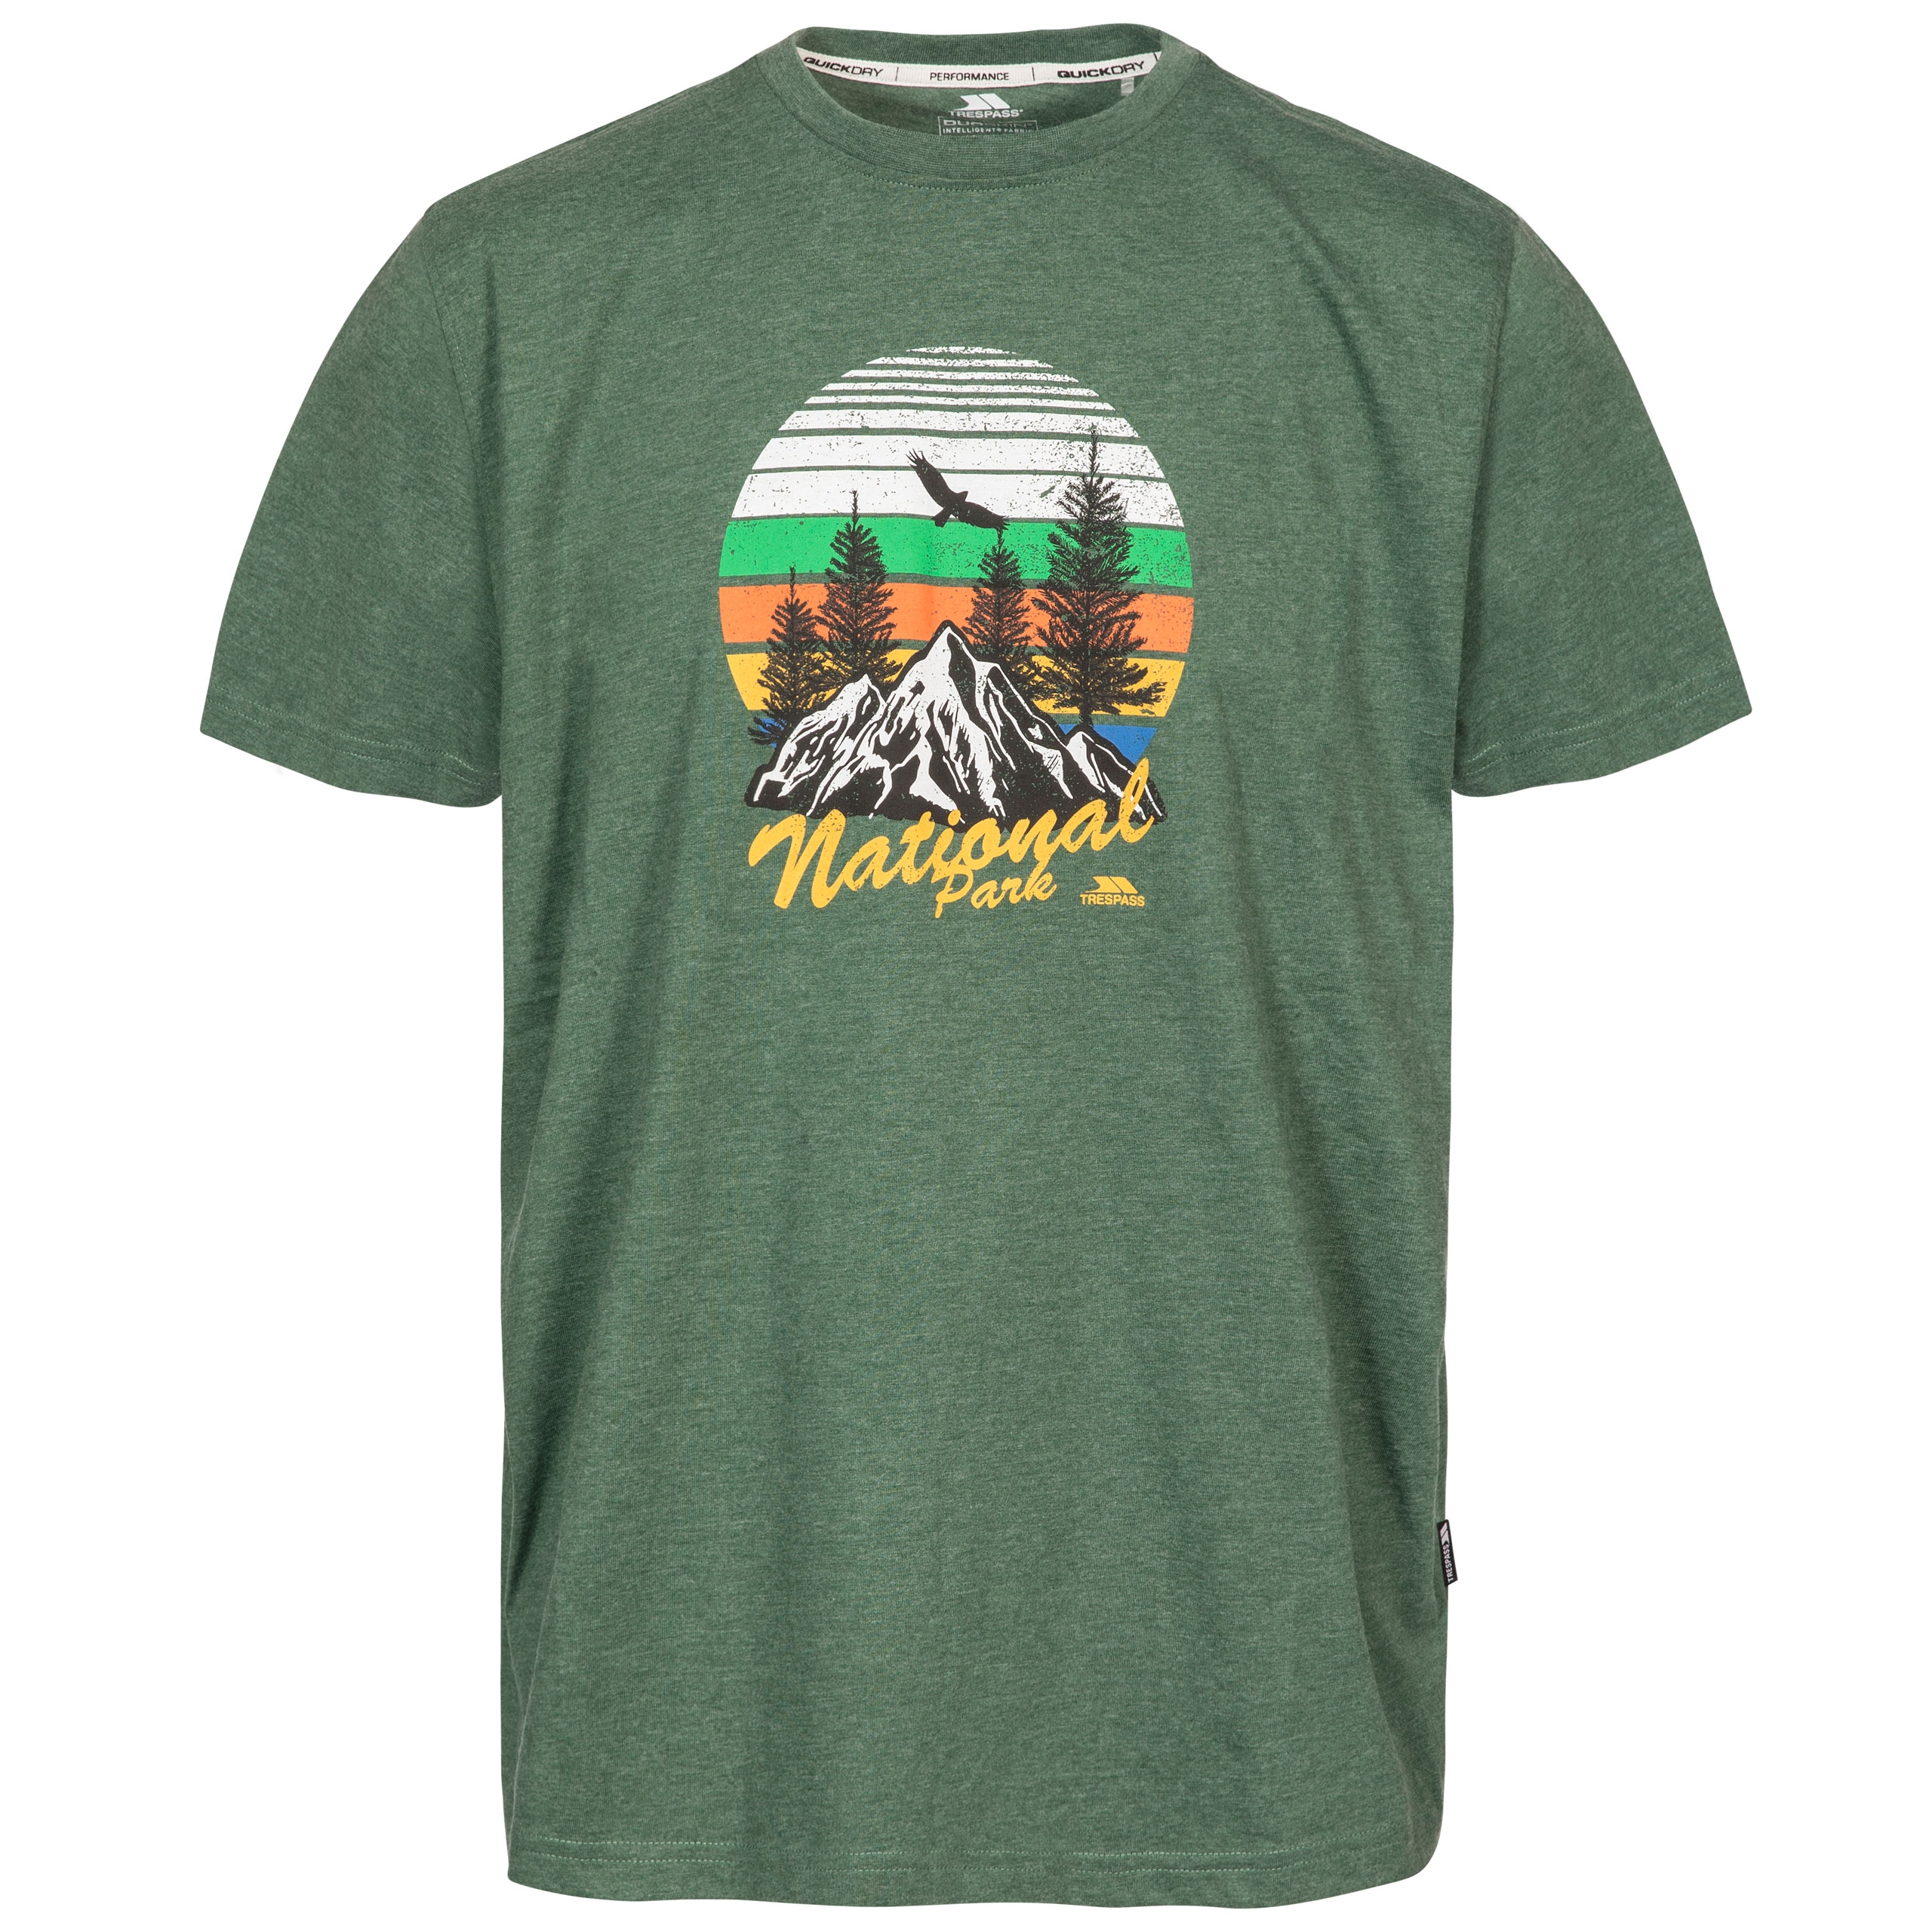 Trespass Estate Mens Short Sleeve T-Shirt from Wicking Quick Dry Fabric